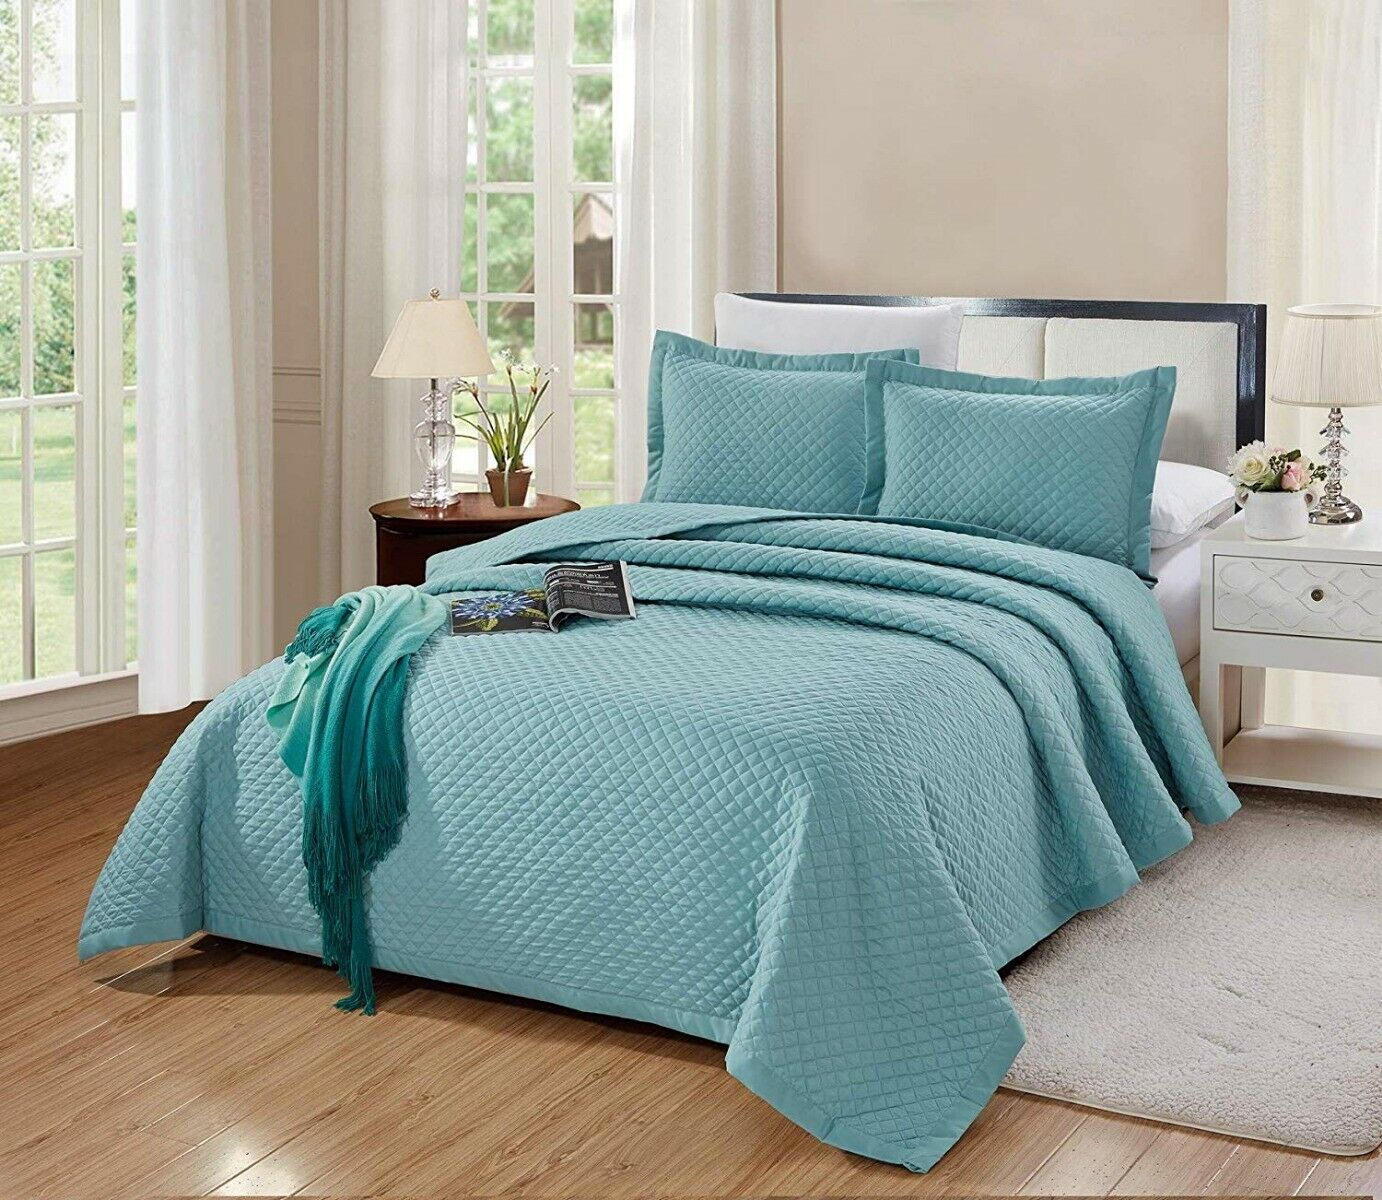 3 PC King Size Naples Quilt Solid SPA bluee Bedspread Soft Microfiber Coverlet